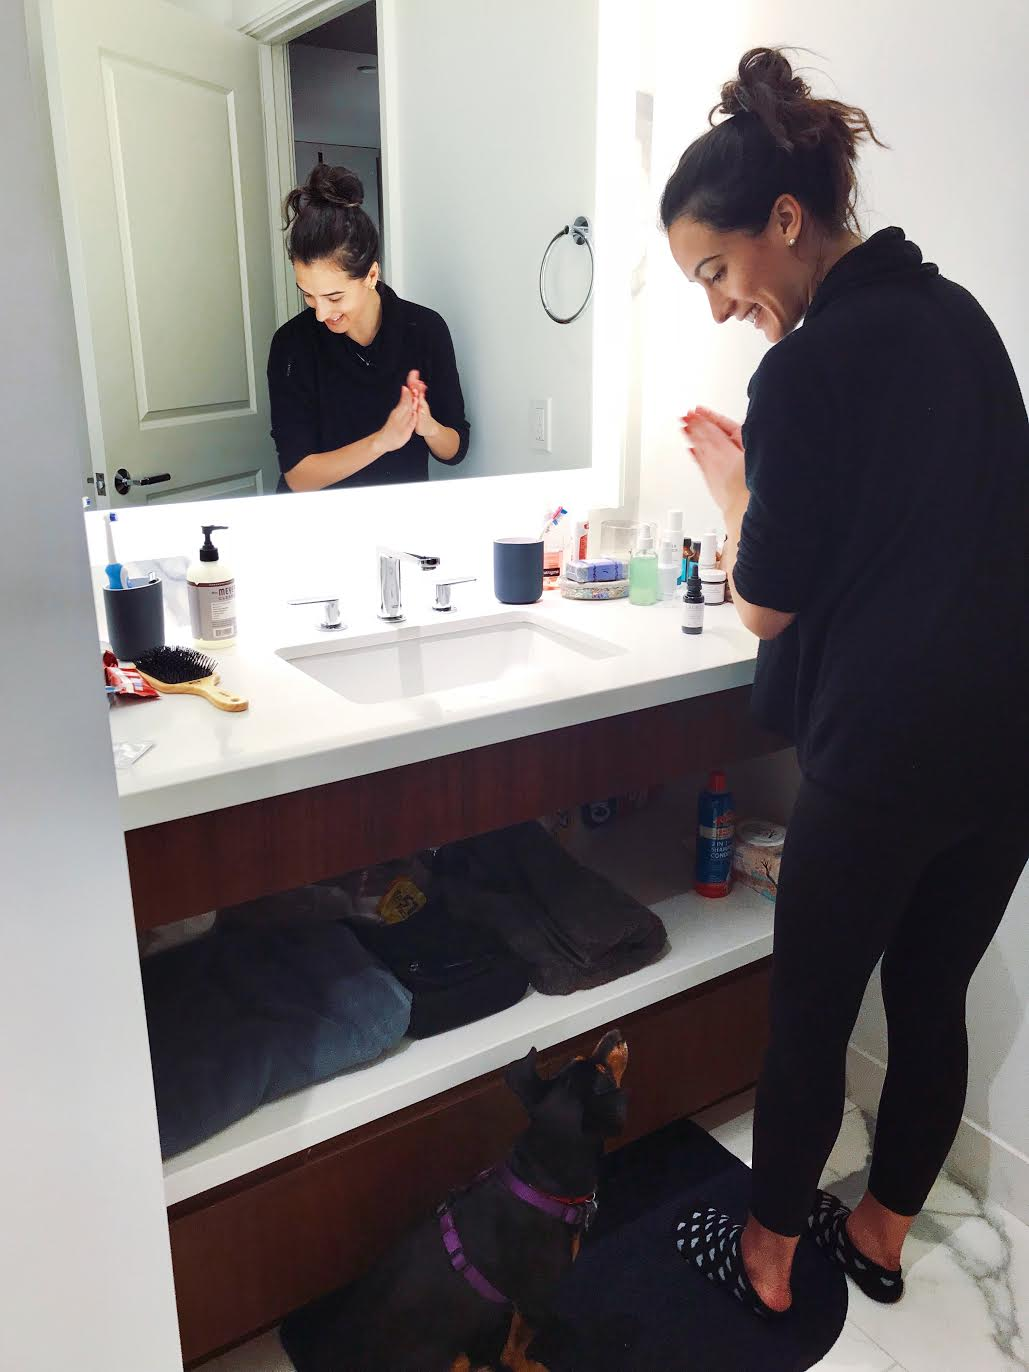 #SkinBabe Giuliana Cortese views skincare as an opportunity for relaxation, even with her puppy Leni!